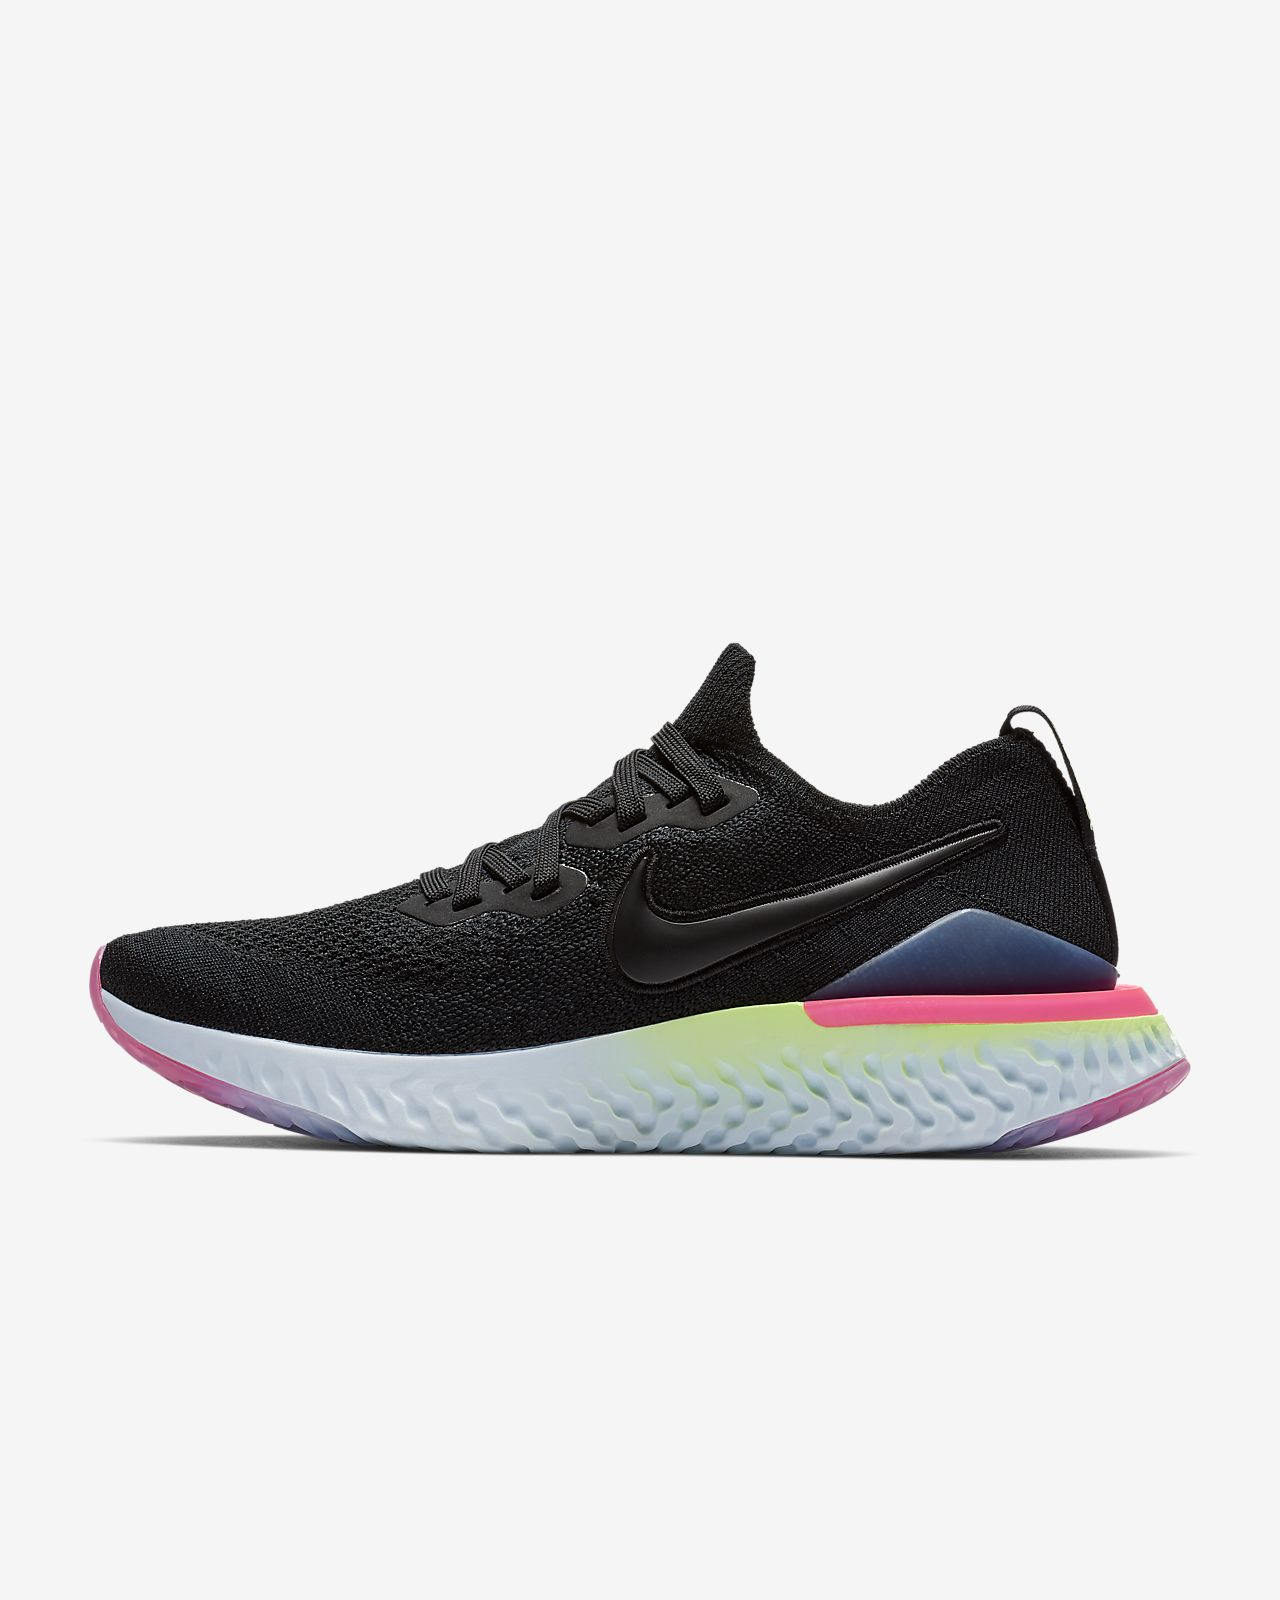 52bcf5bac517 Nike Epic React Flyknit 2 Women s Running Shoe. Nike.com